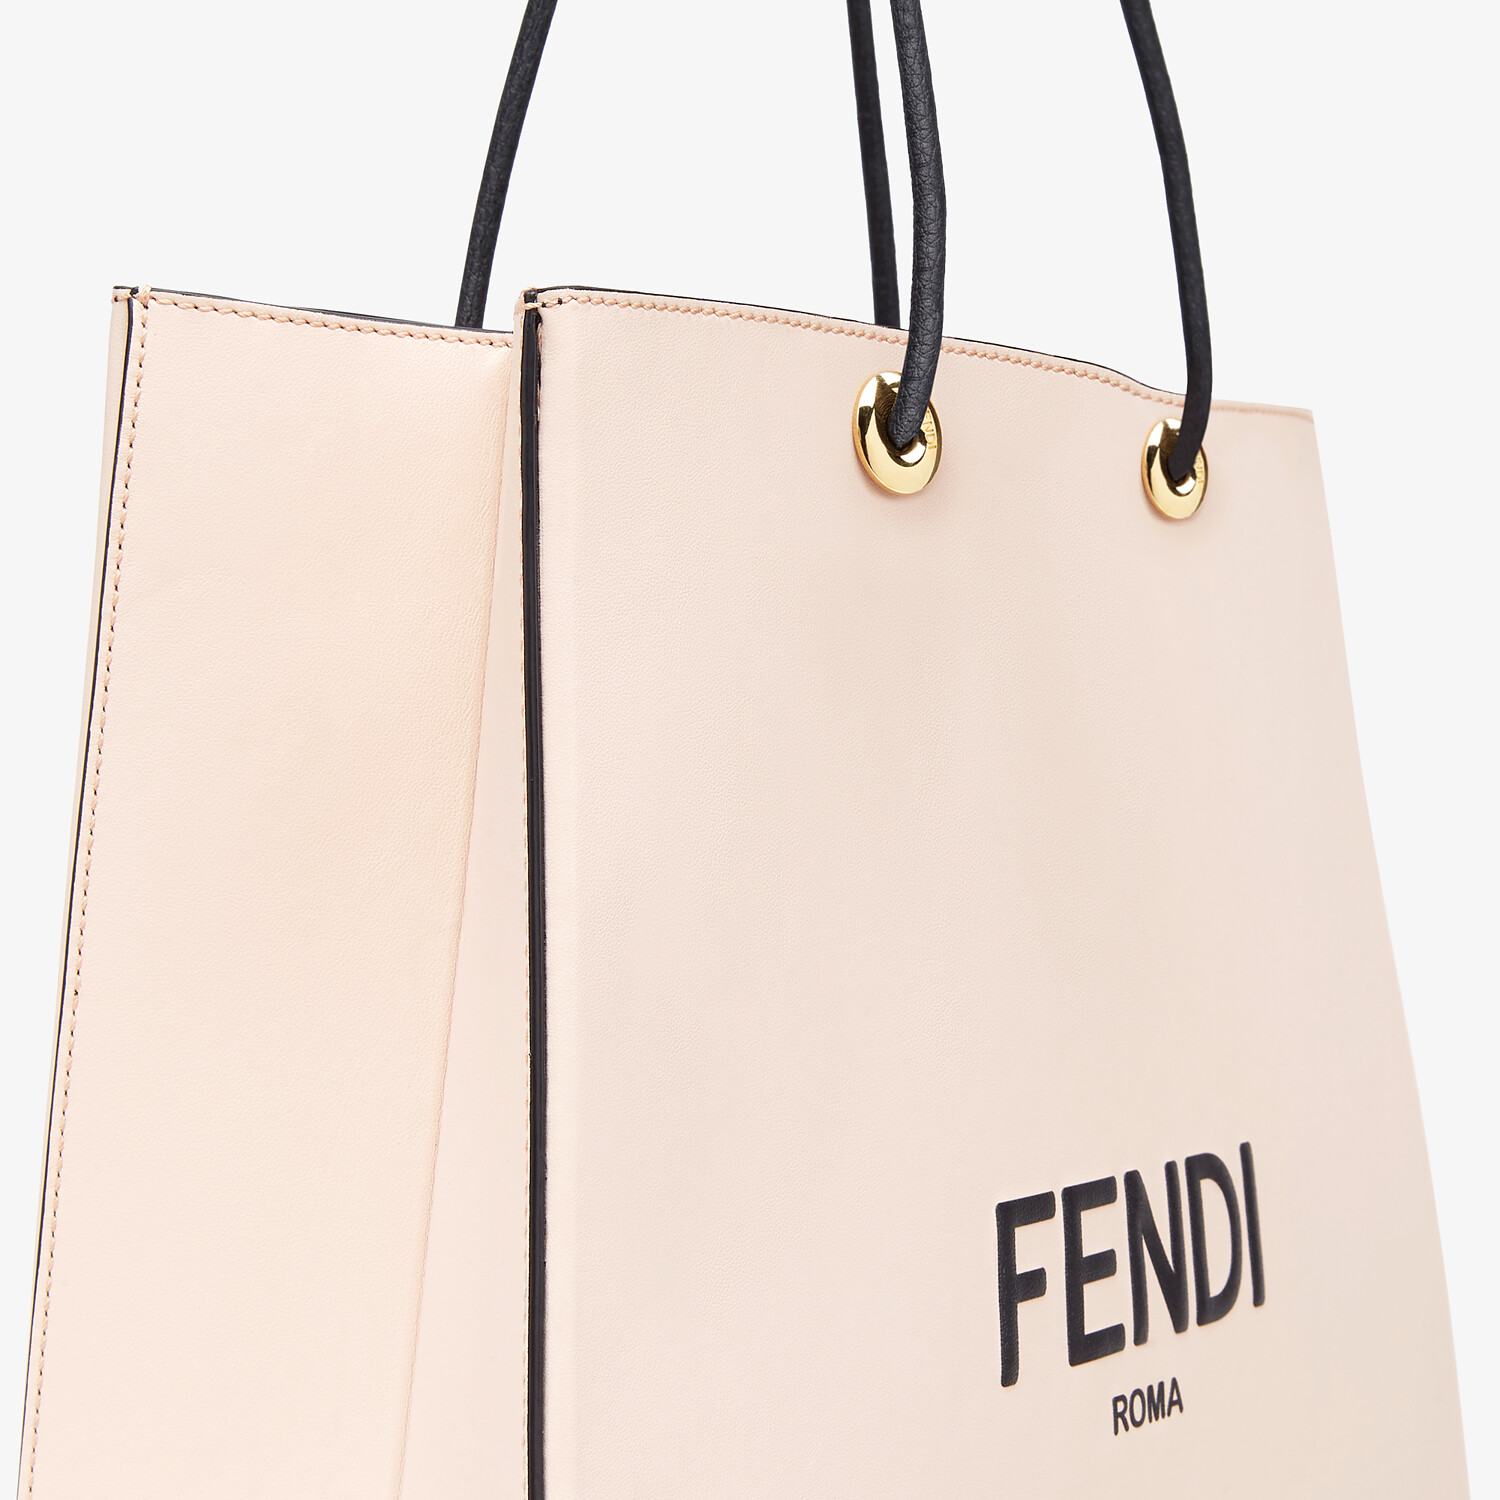 FENDI FENDI PACK MEDIUM SHOPPING BAG - Pink leather bag - view 5 detail